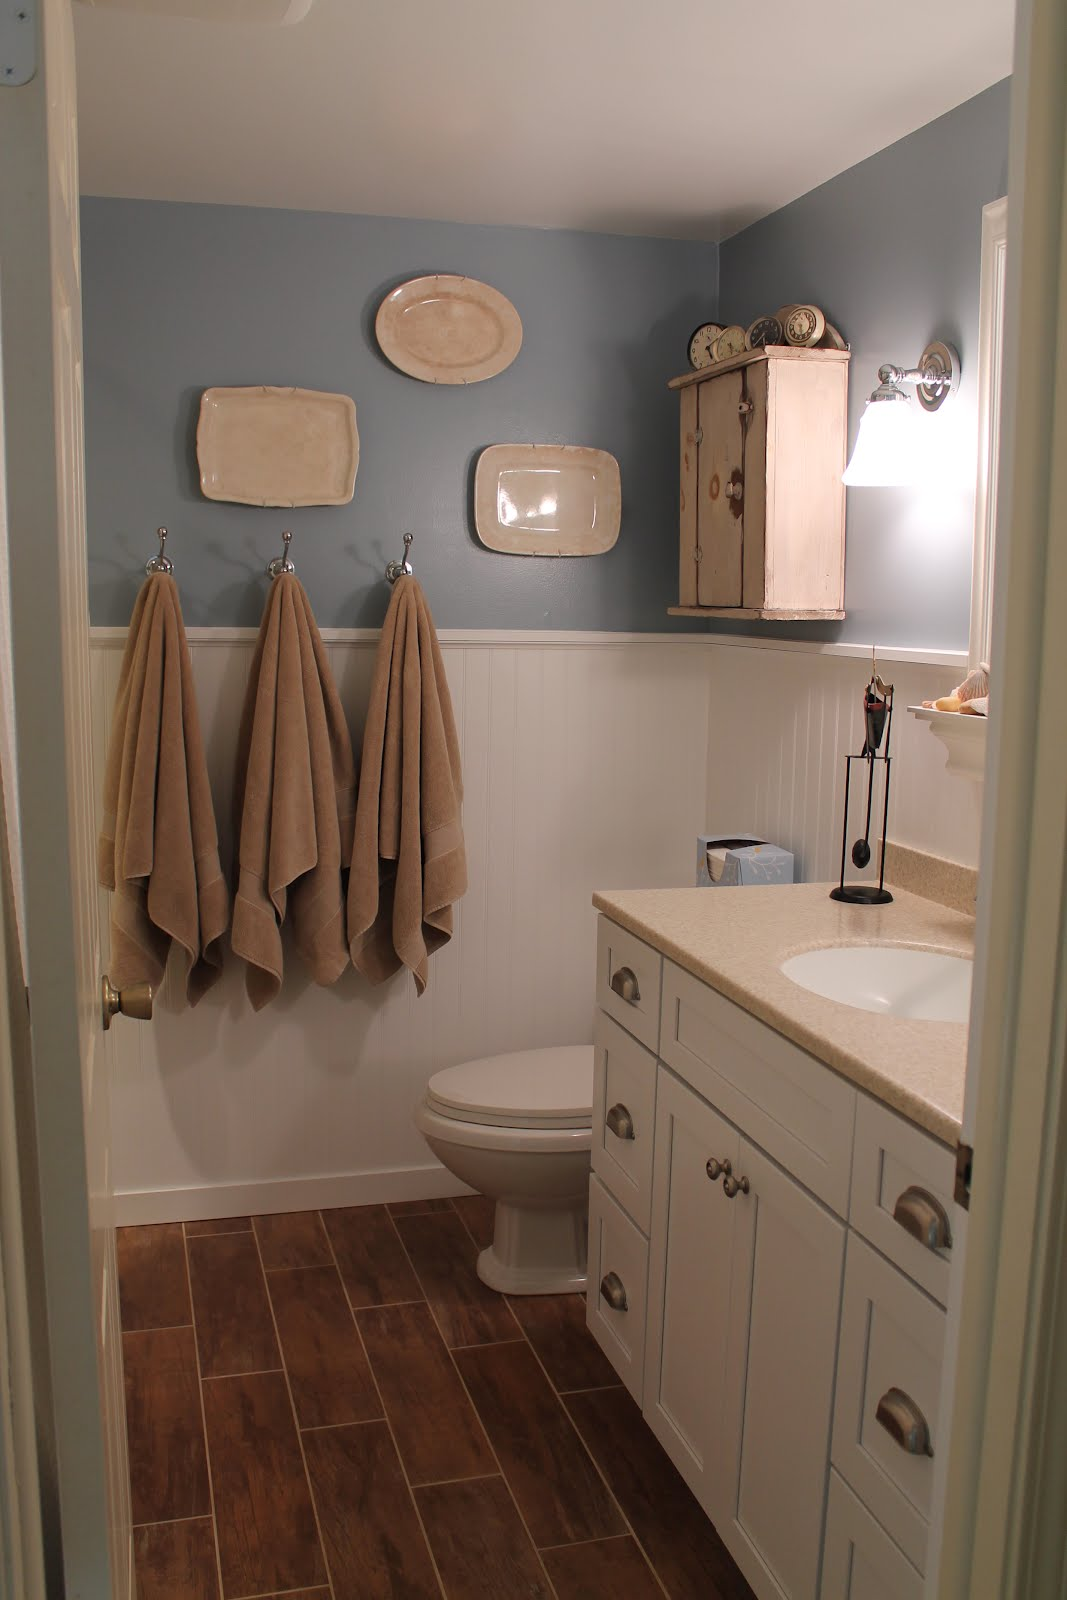 remodelaholic | bathroom renovation with wood grain tile and more